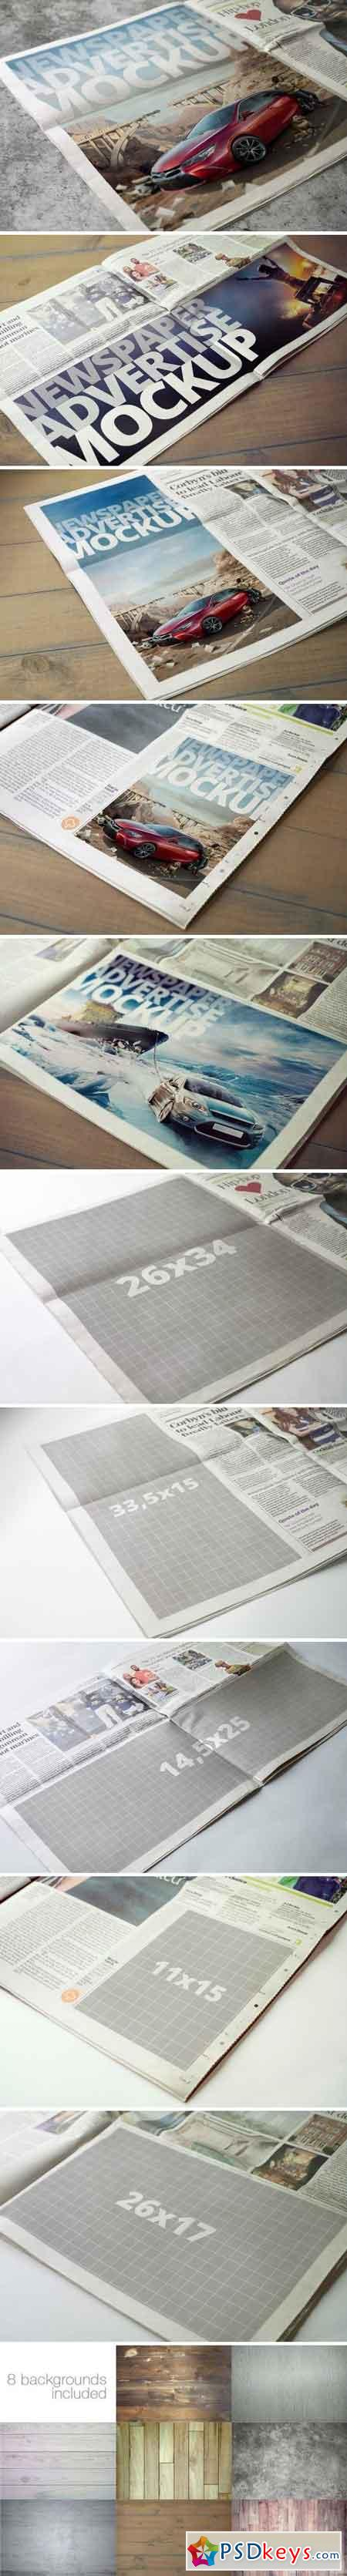 Newspaper Advertise Mockup v2 2144194